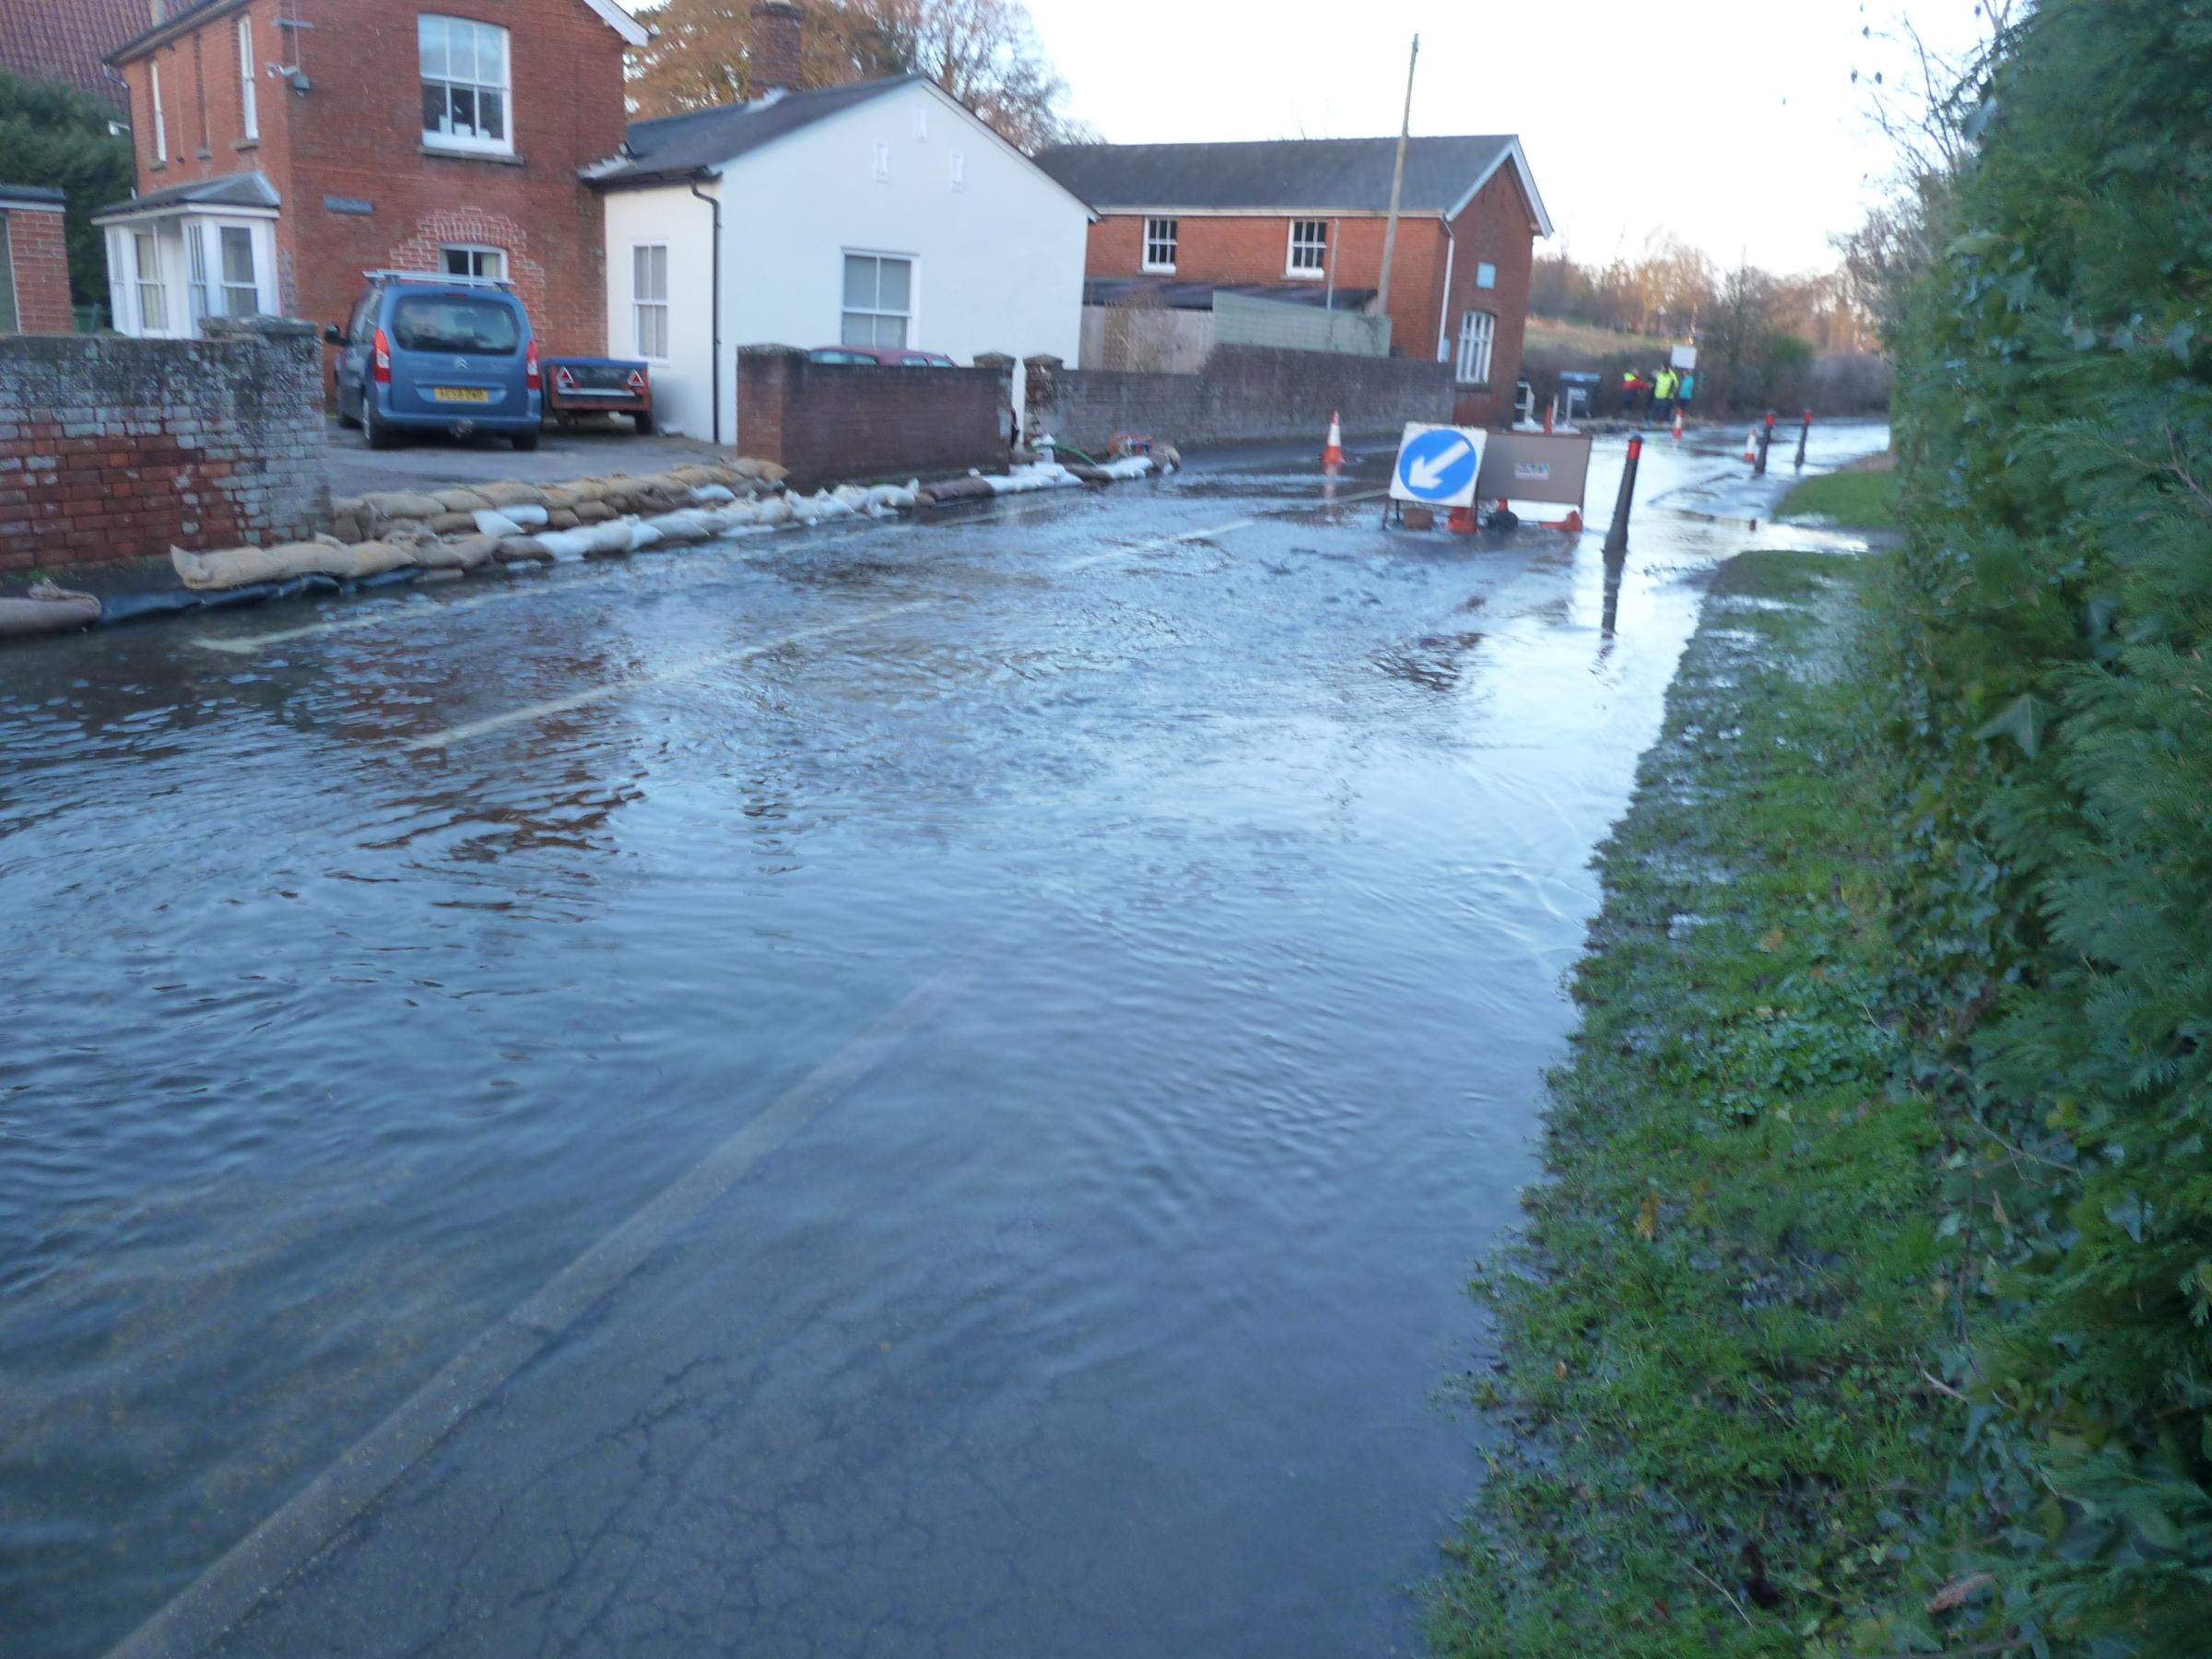 More flooding expected, warns Environment Agency